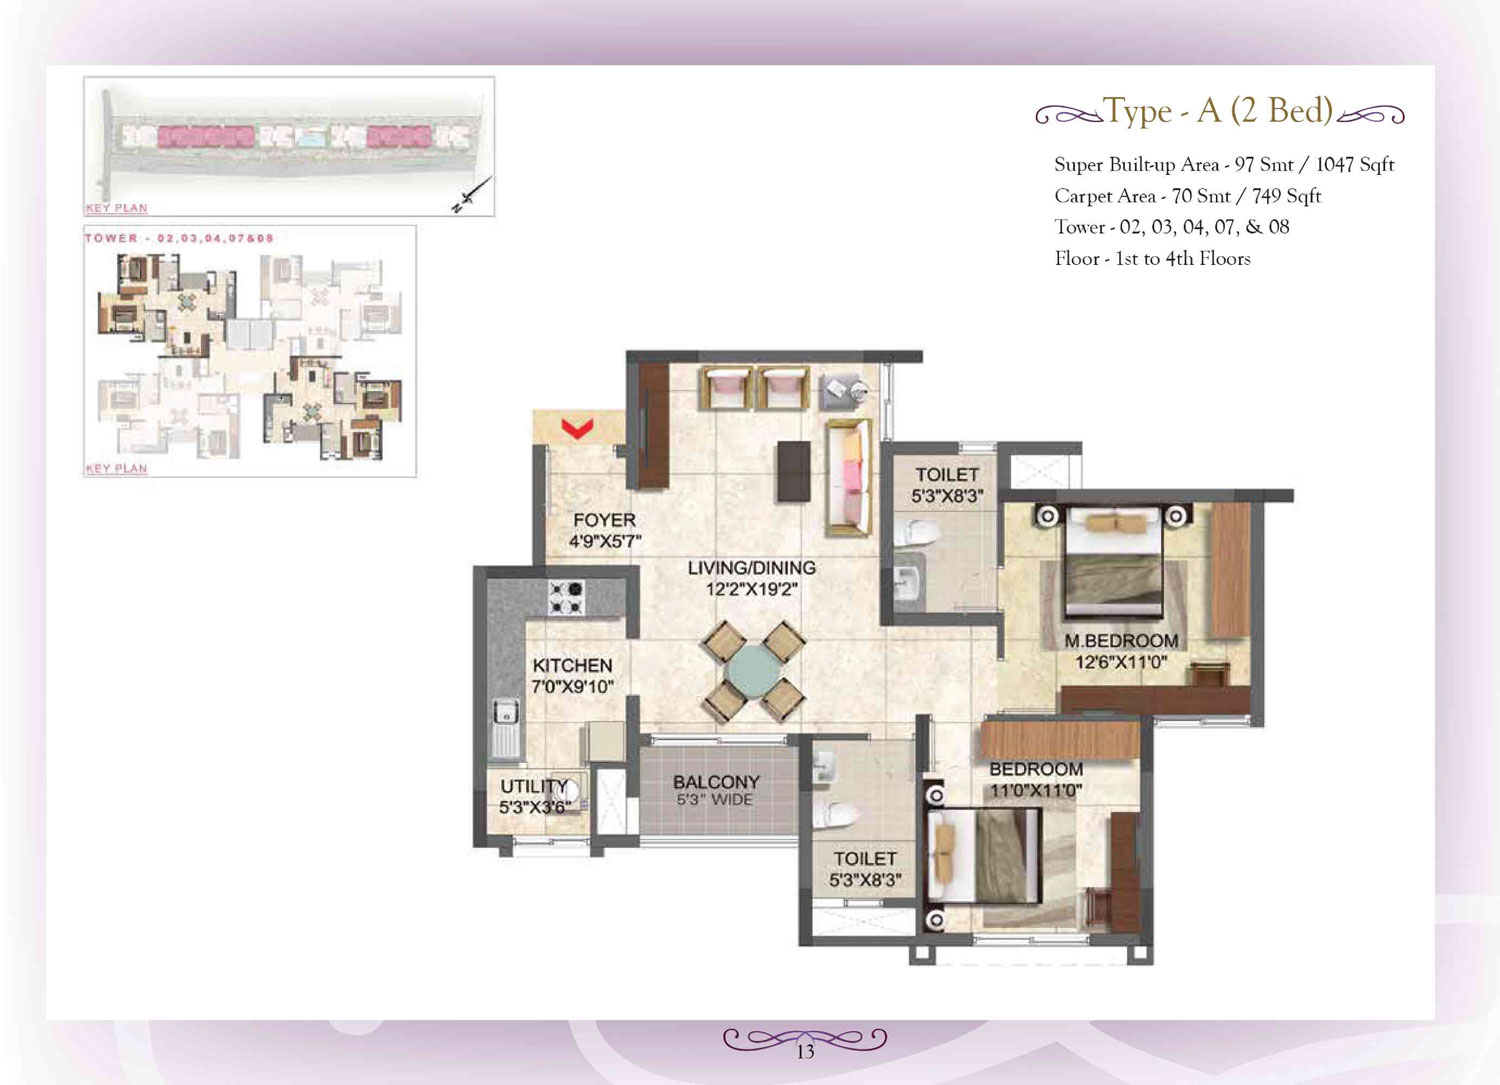 Type A - 2 Bed - 1047 Sq Ft